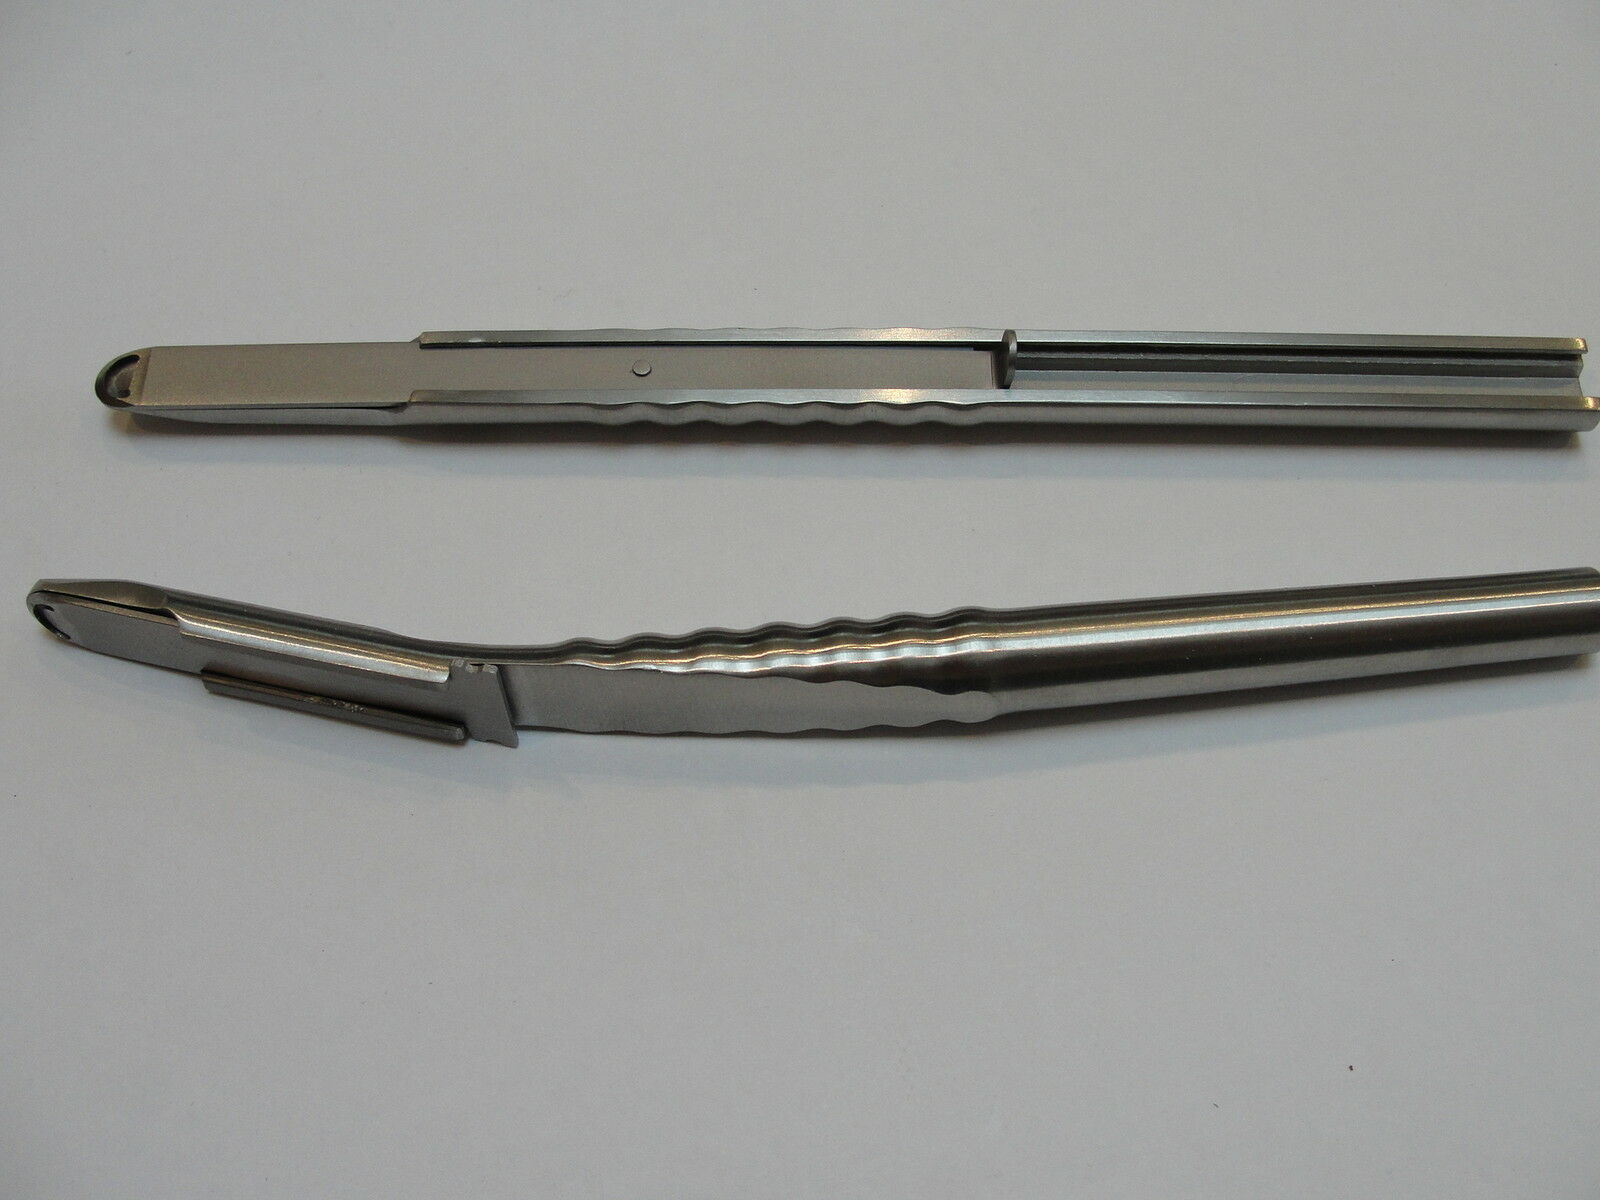 Bone scrapers 1 straight 1 curved dental implantology surgical instruments